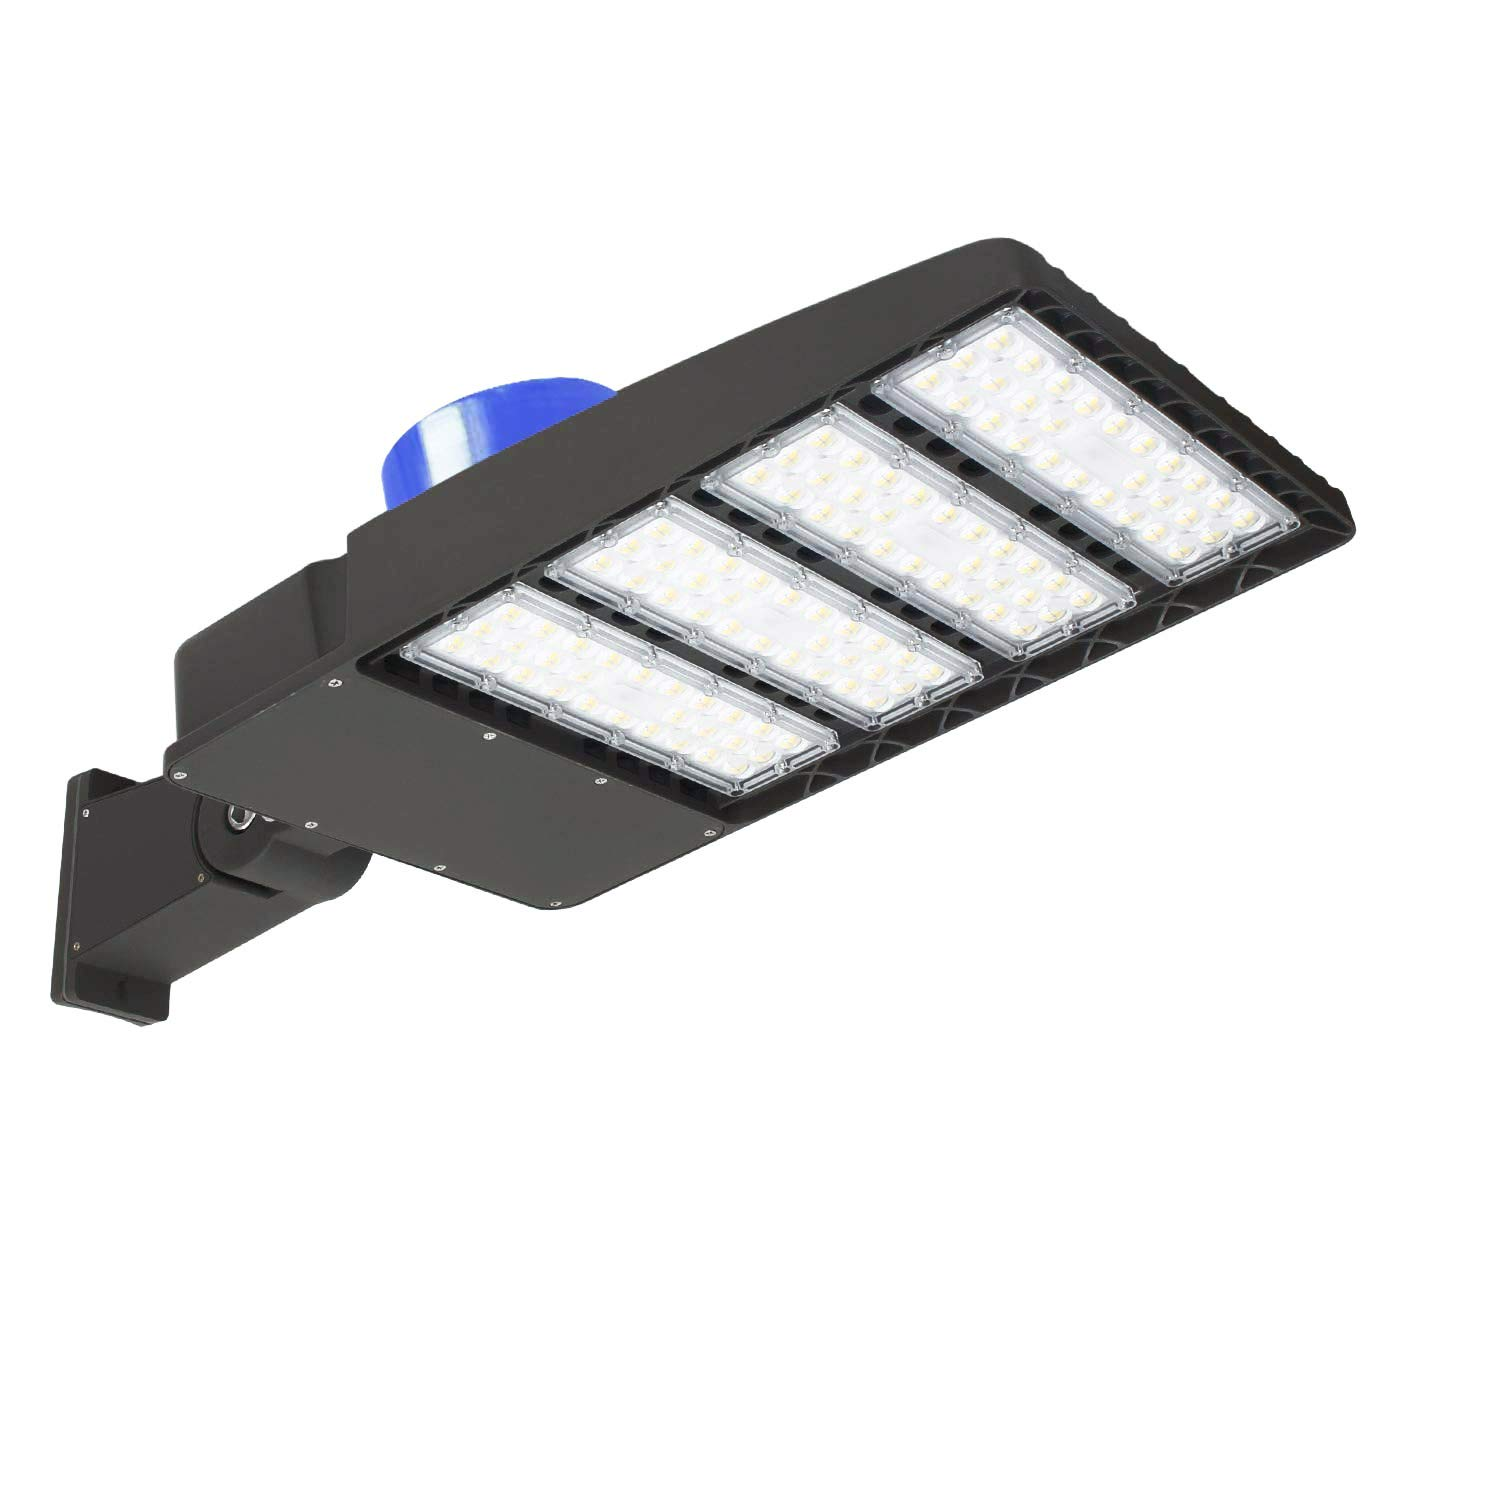 LED Parking Lot Lights 300W - 39000LM Super Efficiency 5000K LED Street Lights Shoebox Pole Lights with Photocell, Replaces 1000W Halide Waterproof Outdoor Commercial Area Road Lighting(Arm Mount)